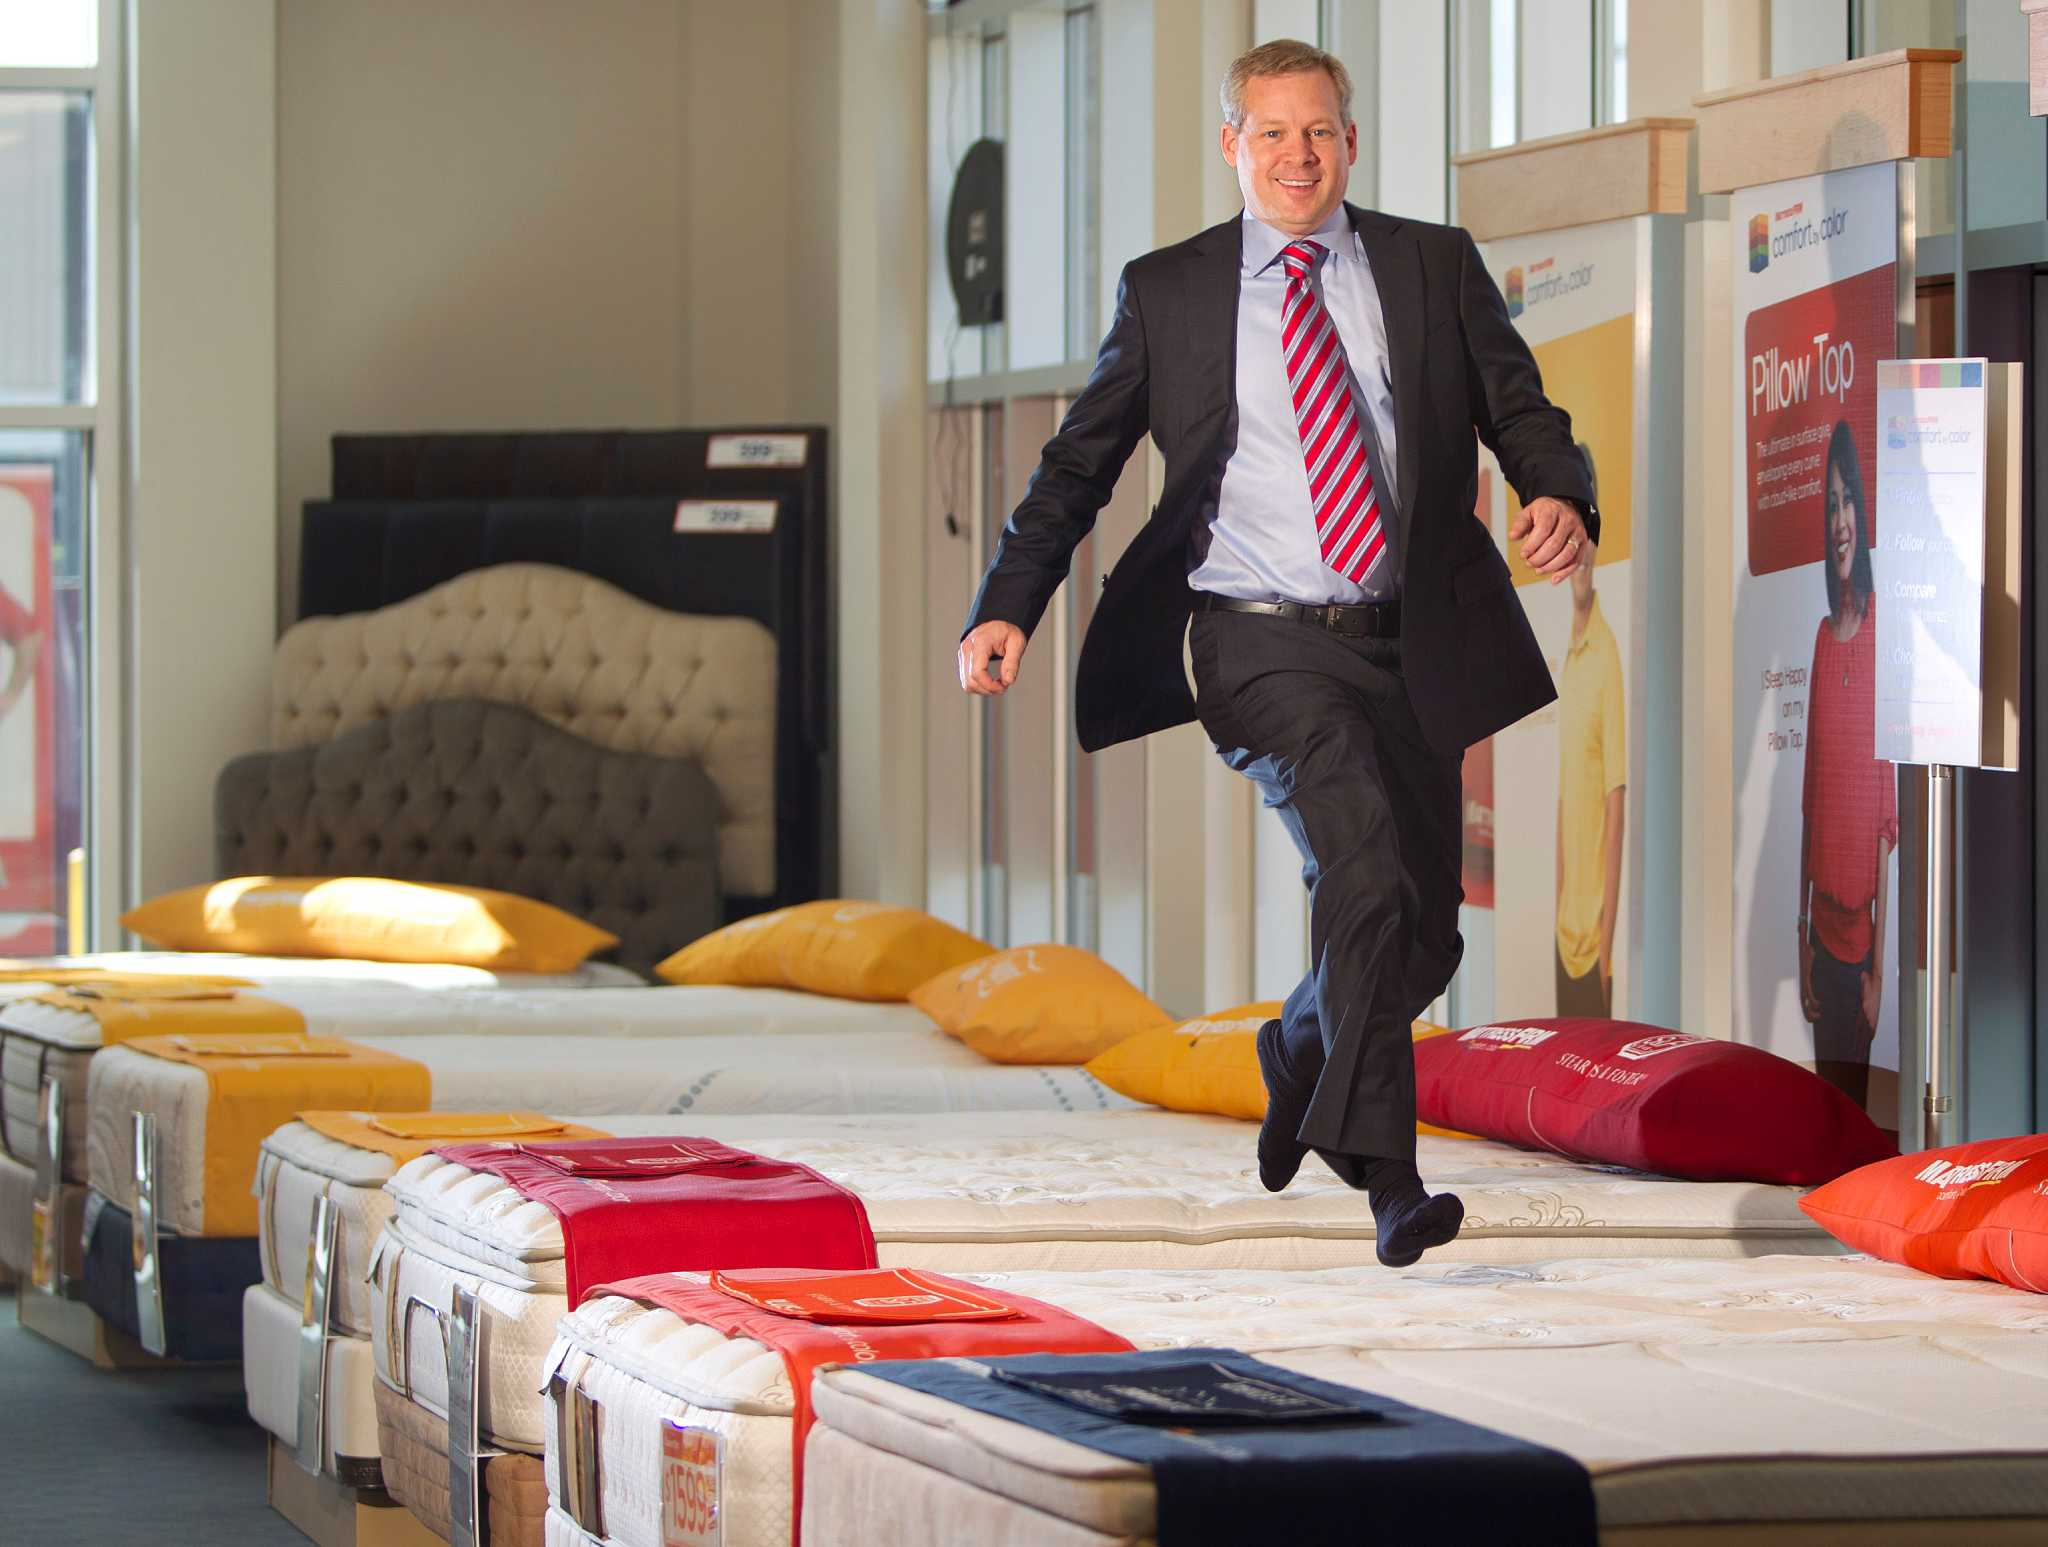 Mattress Firm Not Content To Rest After Climb To No 1 Houstonchronicle Com